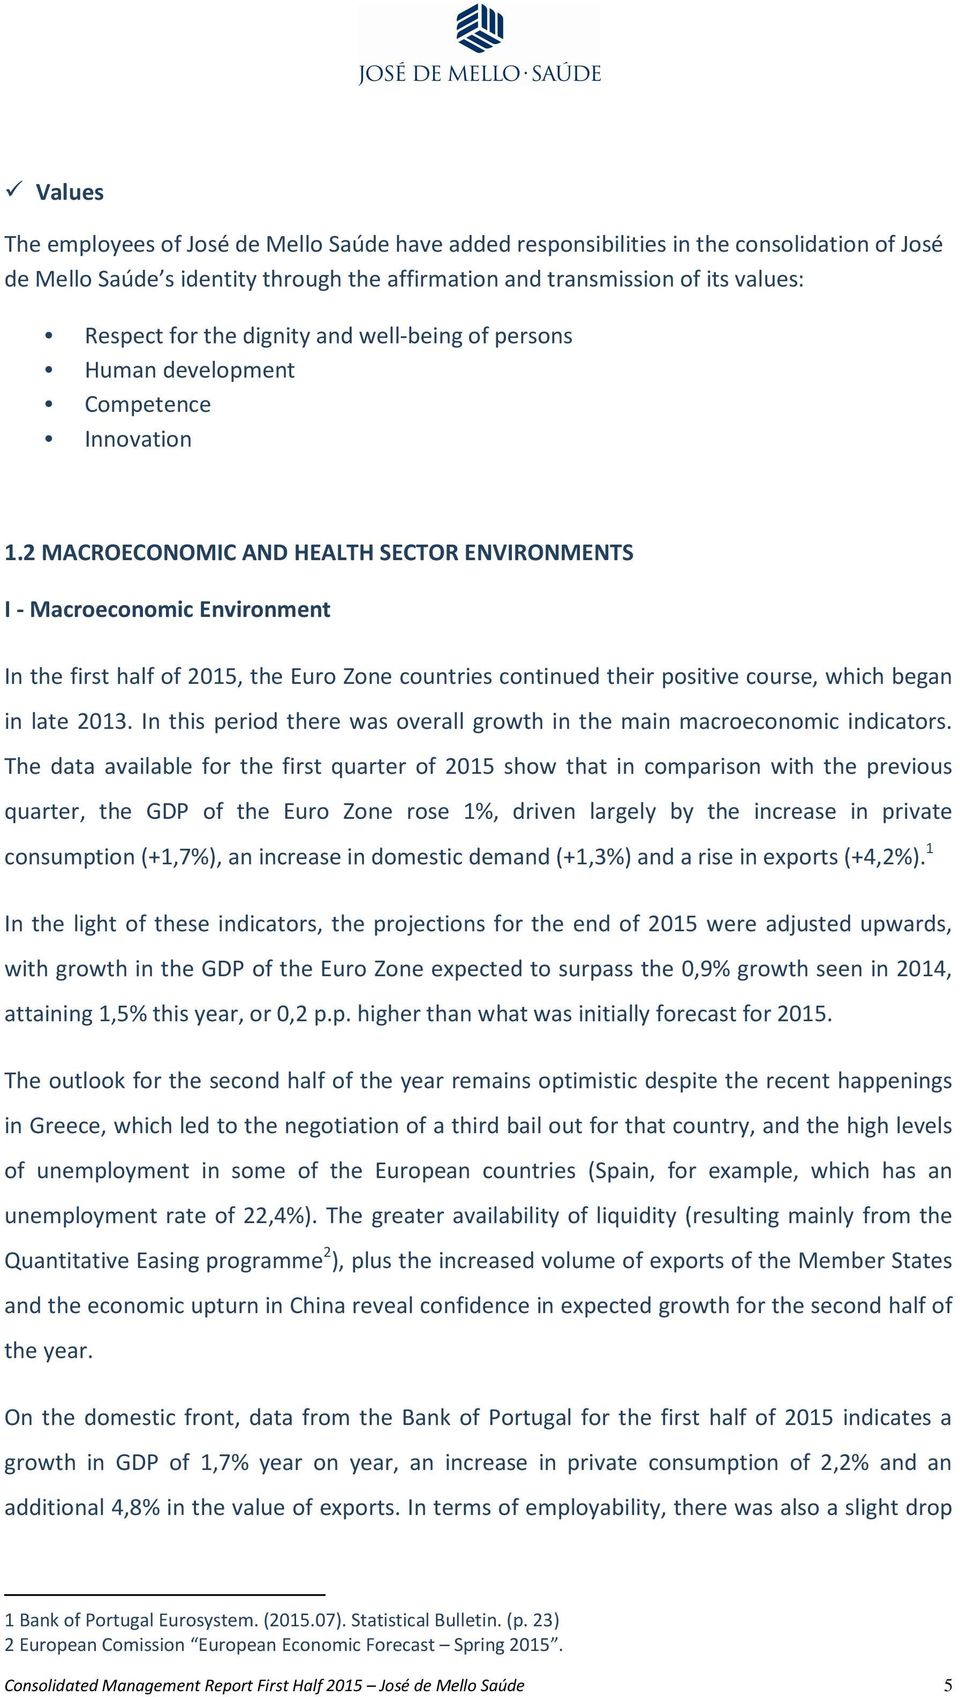 2 MACROECONOMIC AND HEALTH SECTOR ENVIRONMENTS I - Macroeconomic Environment In the first half of 2015, the Euro Zone countries continued their positive course, which began in late 2013.